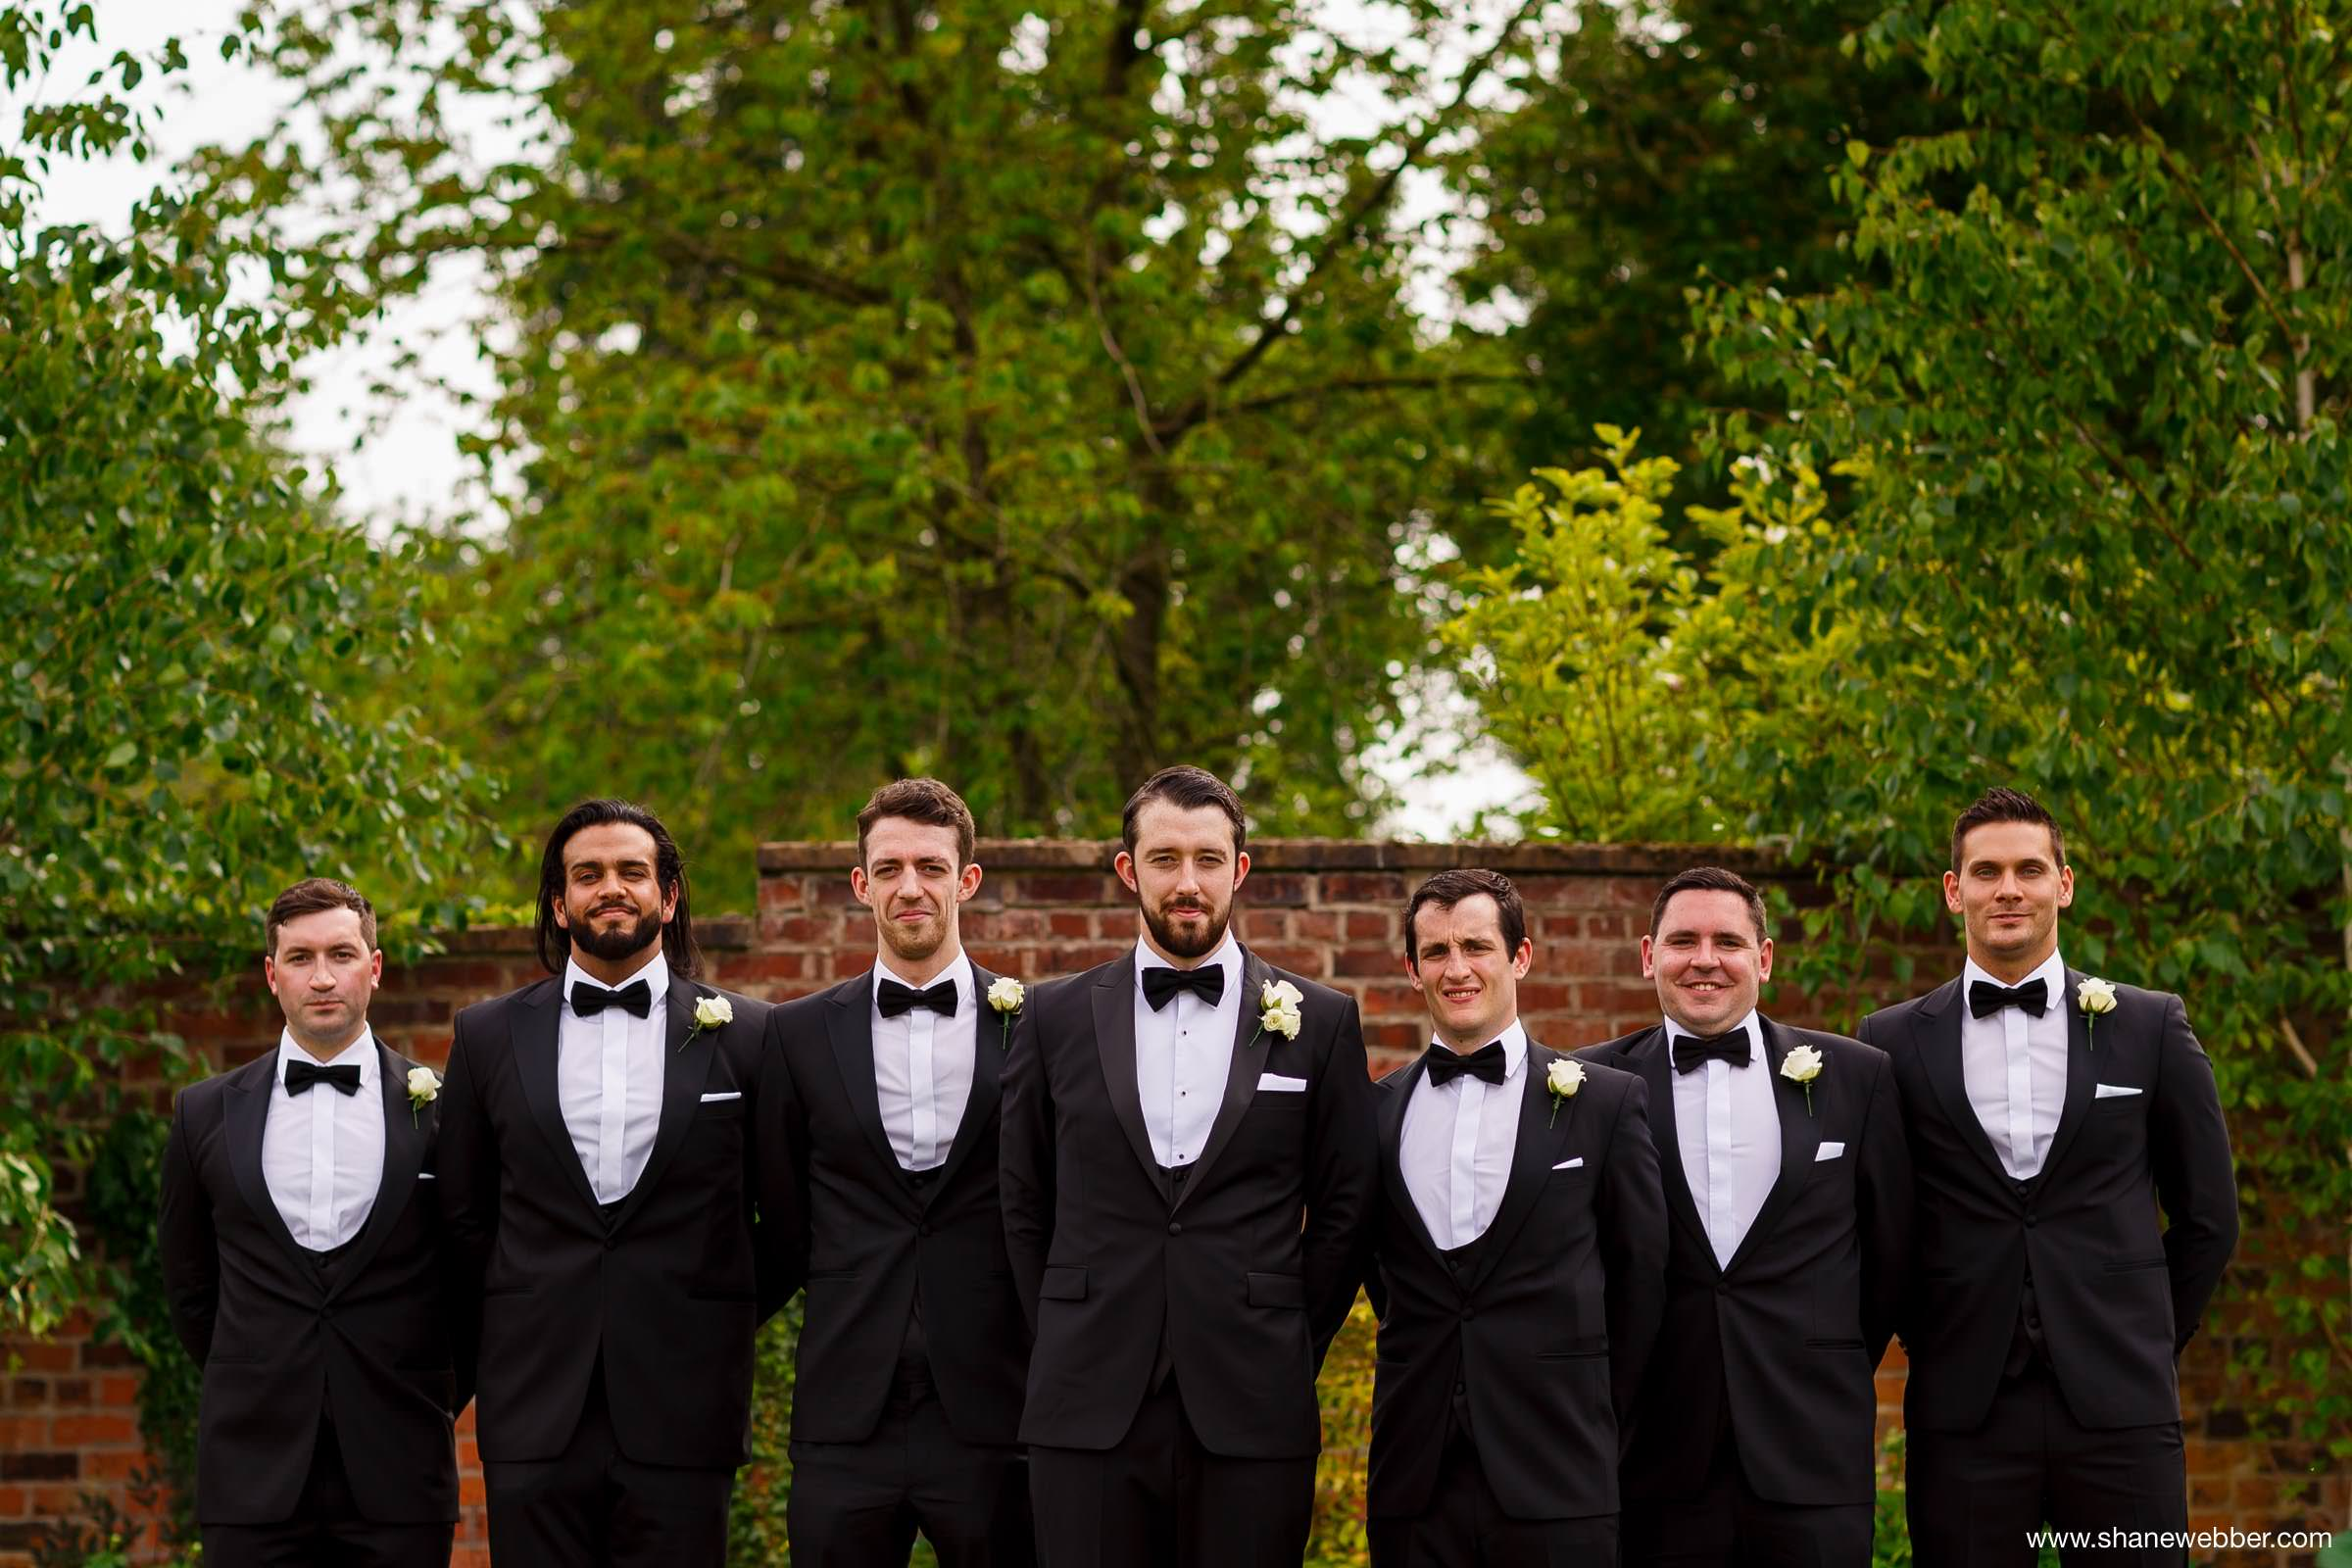 Groom and groomsmen wearing black tie